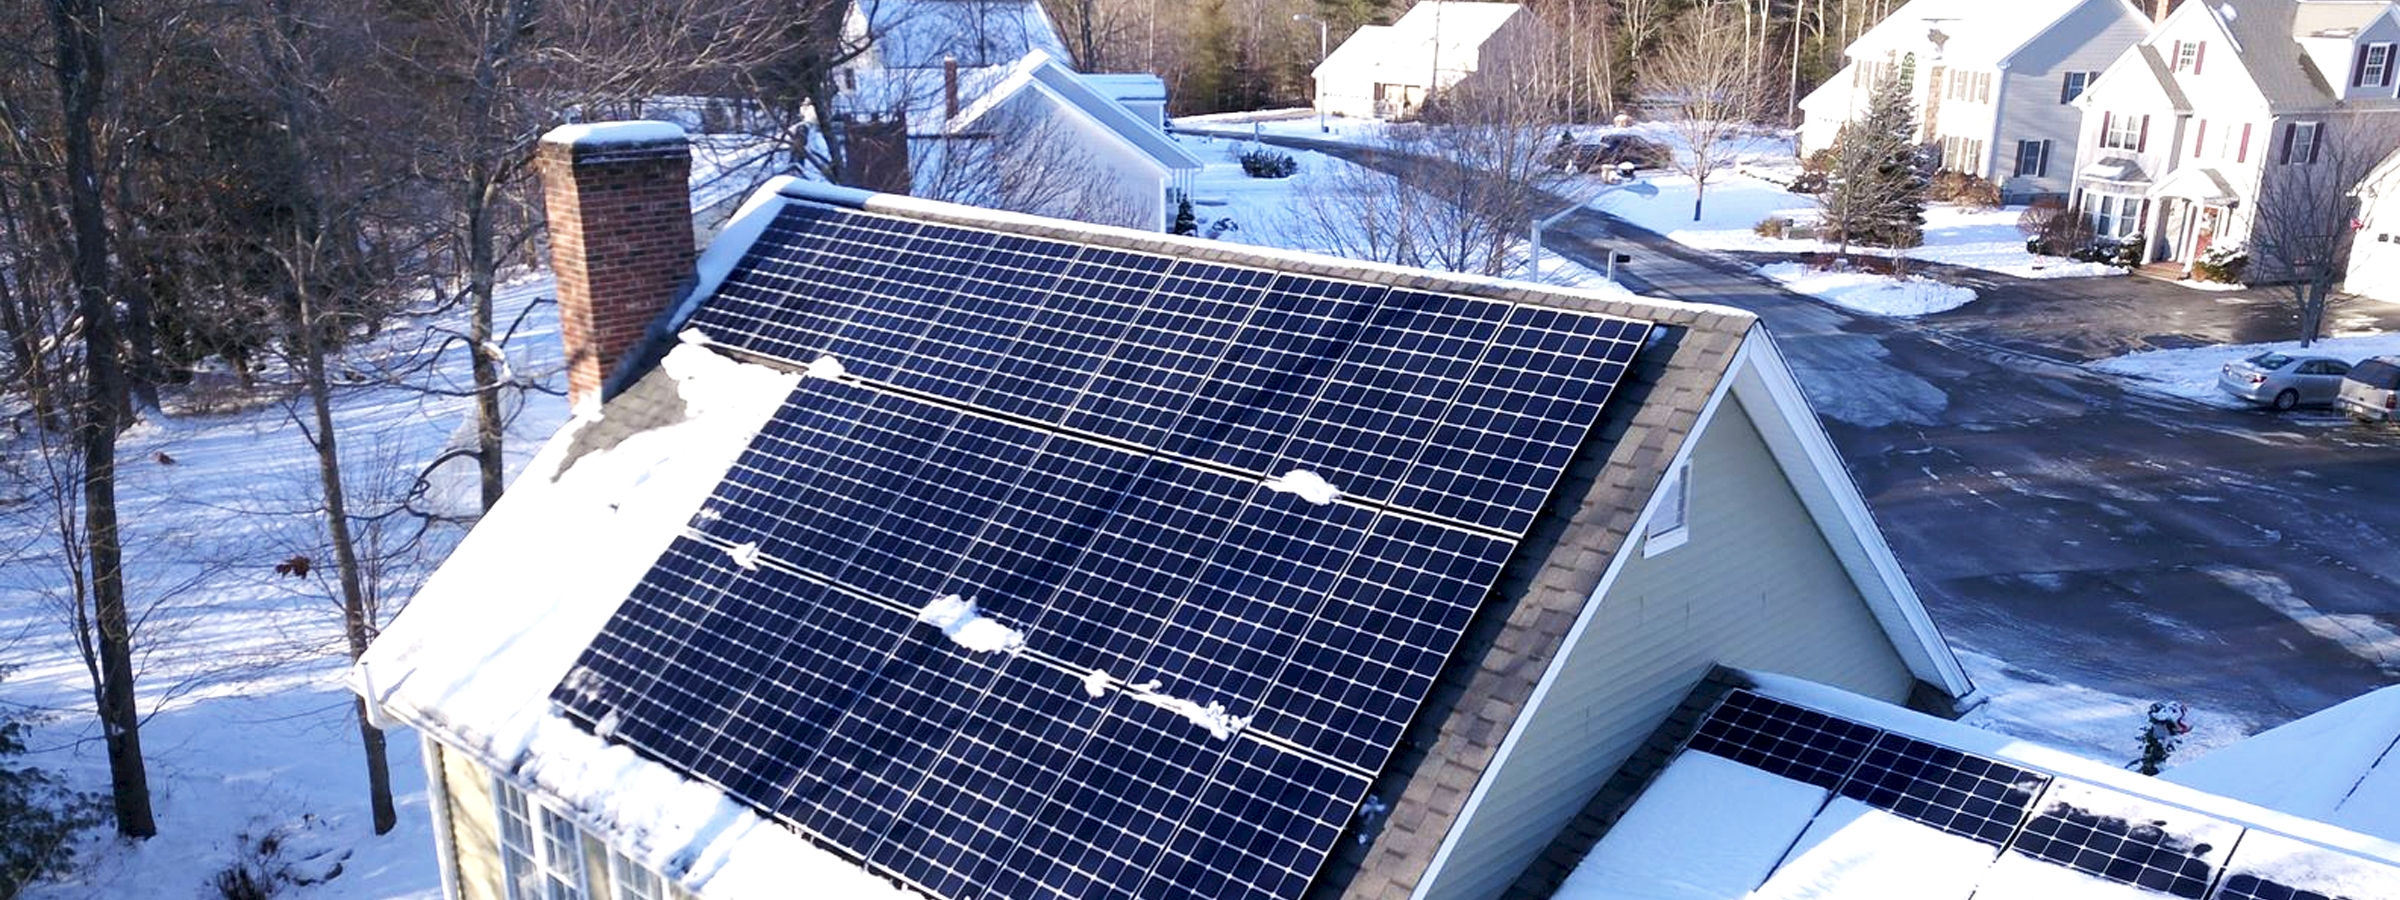 How much energy will my solar panels produce in the winter?